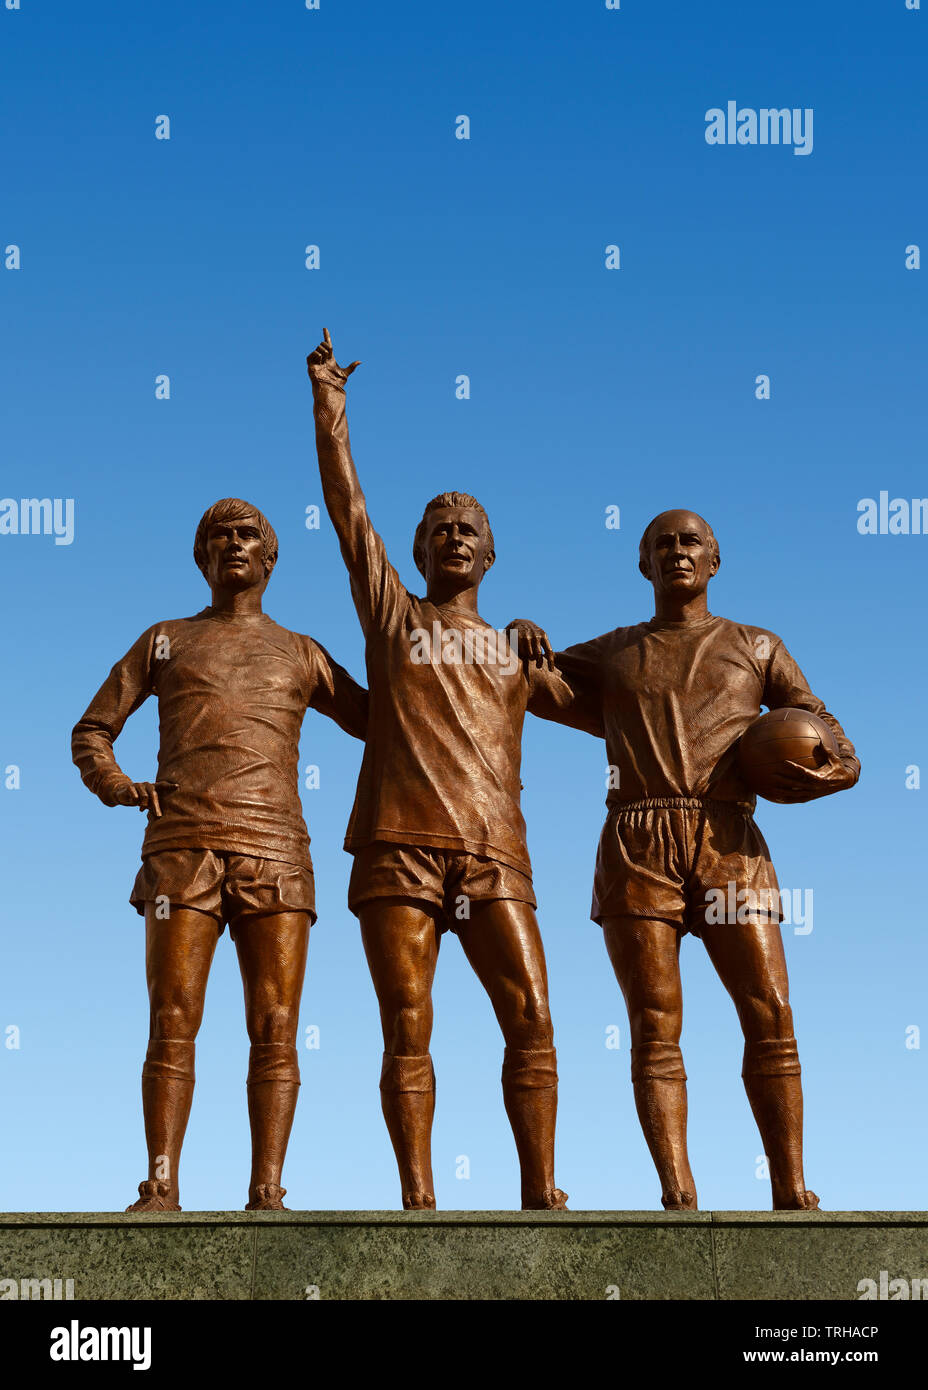 Holy Trinity Statue Outside the Manchester United Stadium, Old Trafford, Manchester, United Kingdom - Stock Image